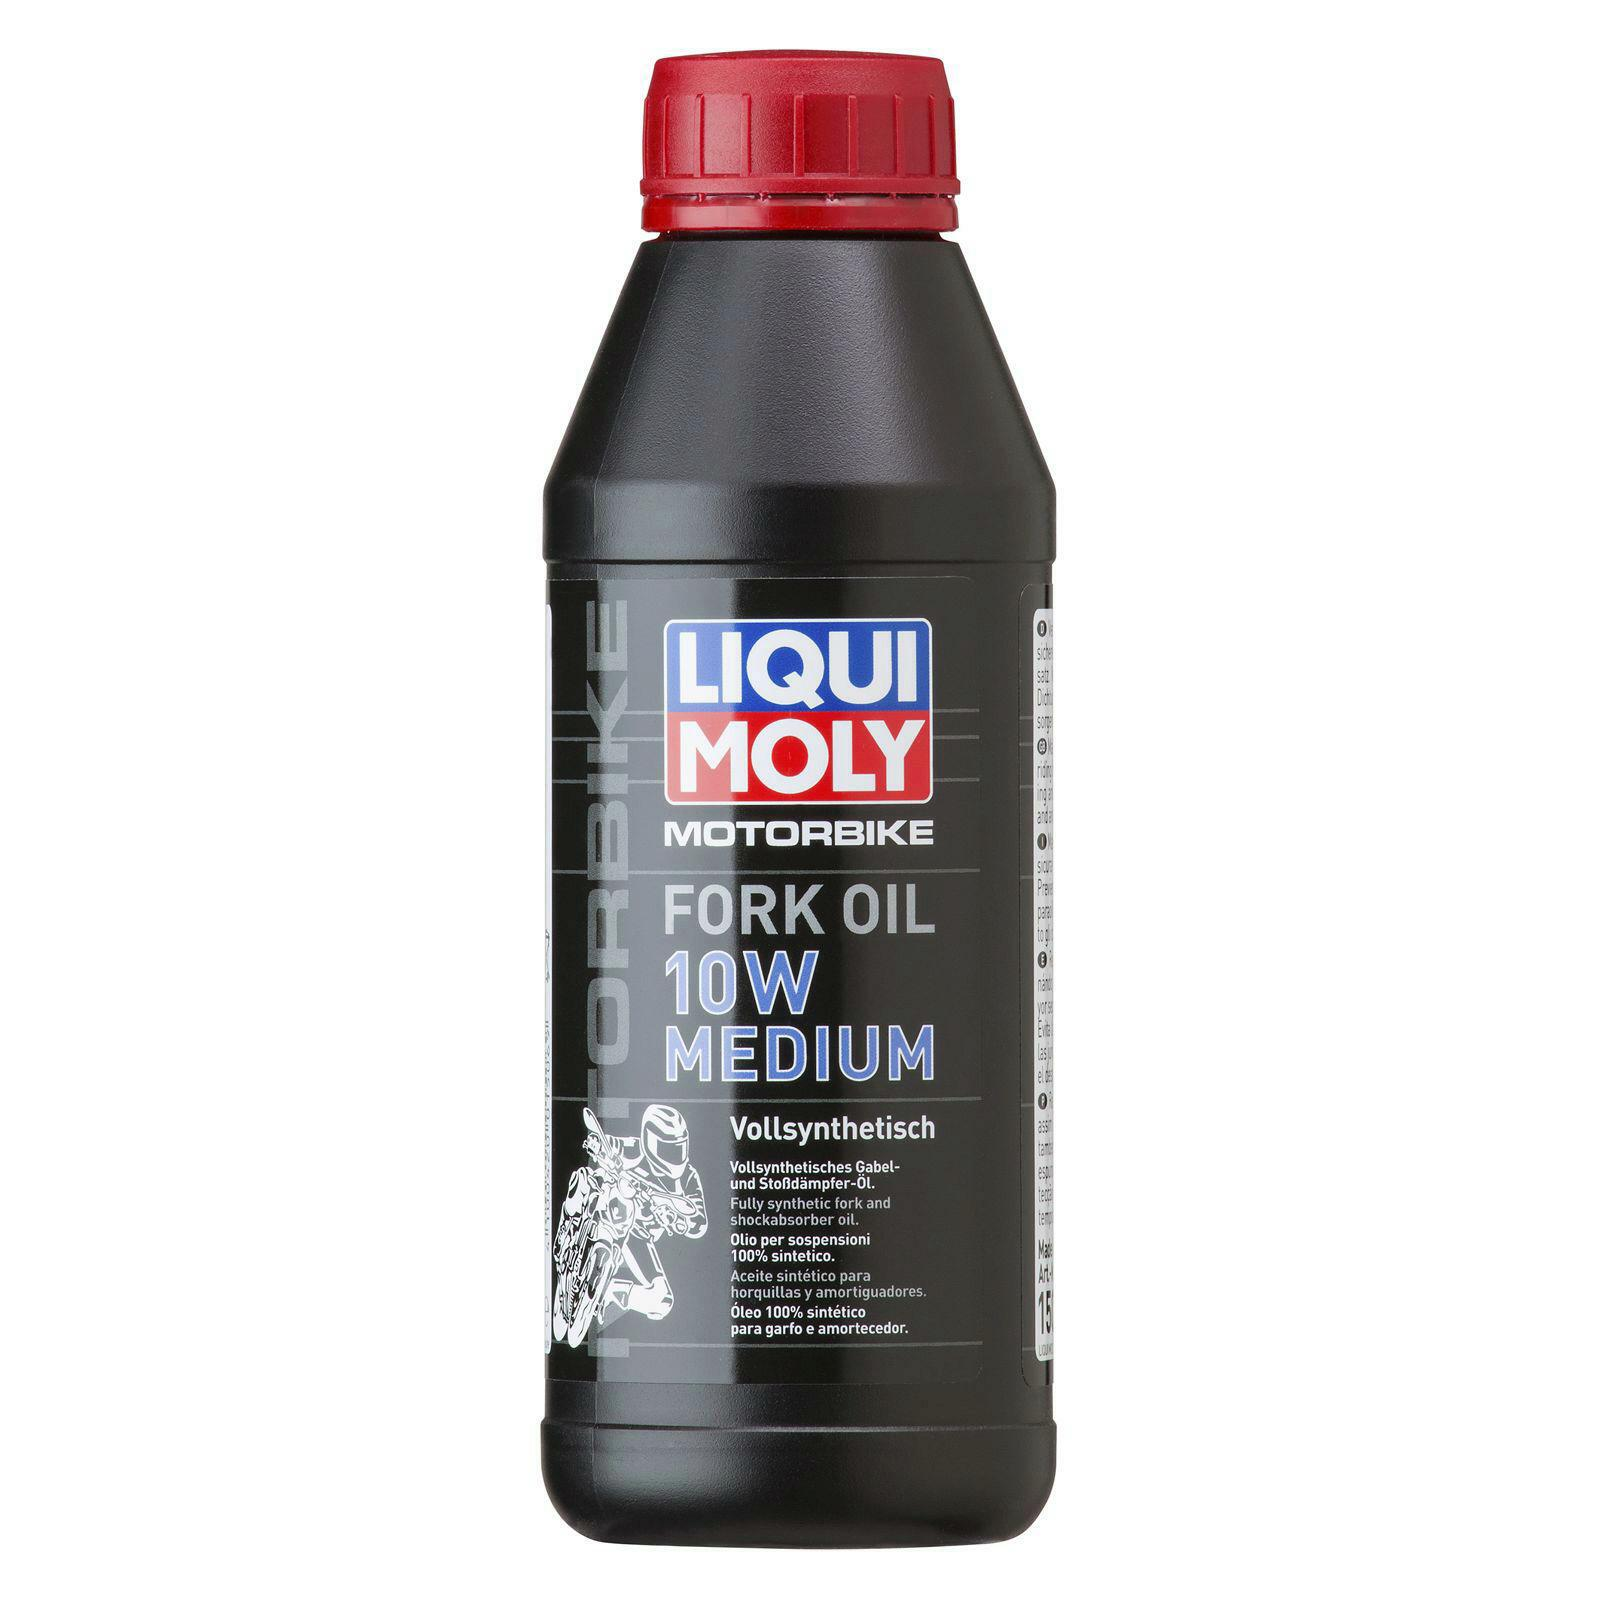 Liqui Moly Motorbike Fork Öl 10W Medium 500ml